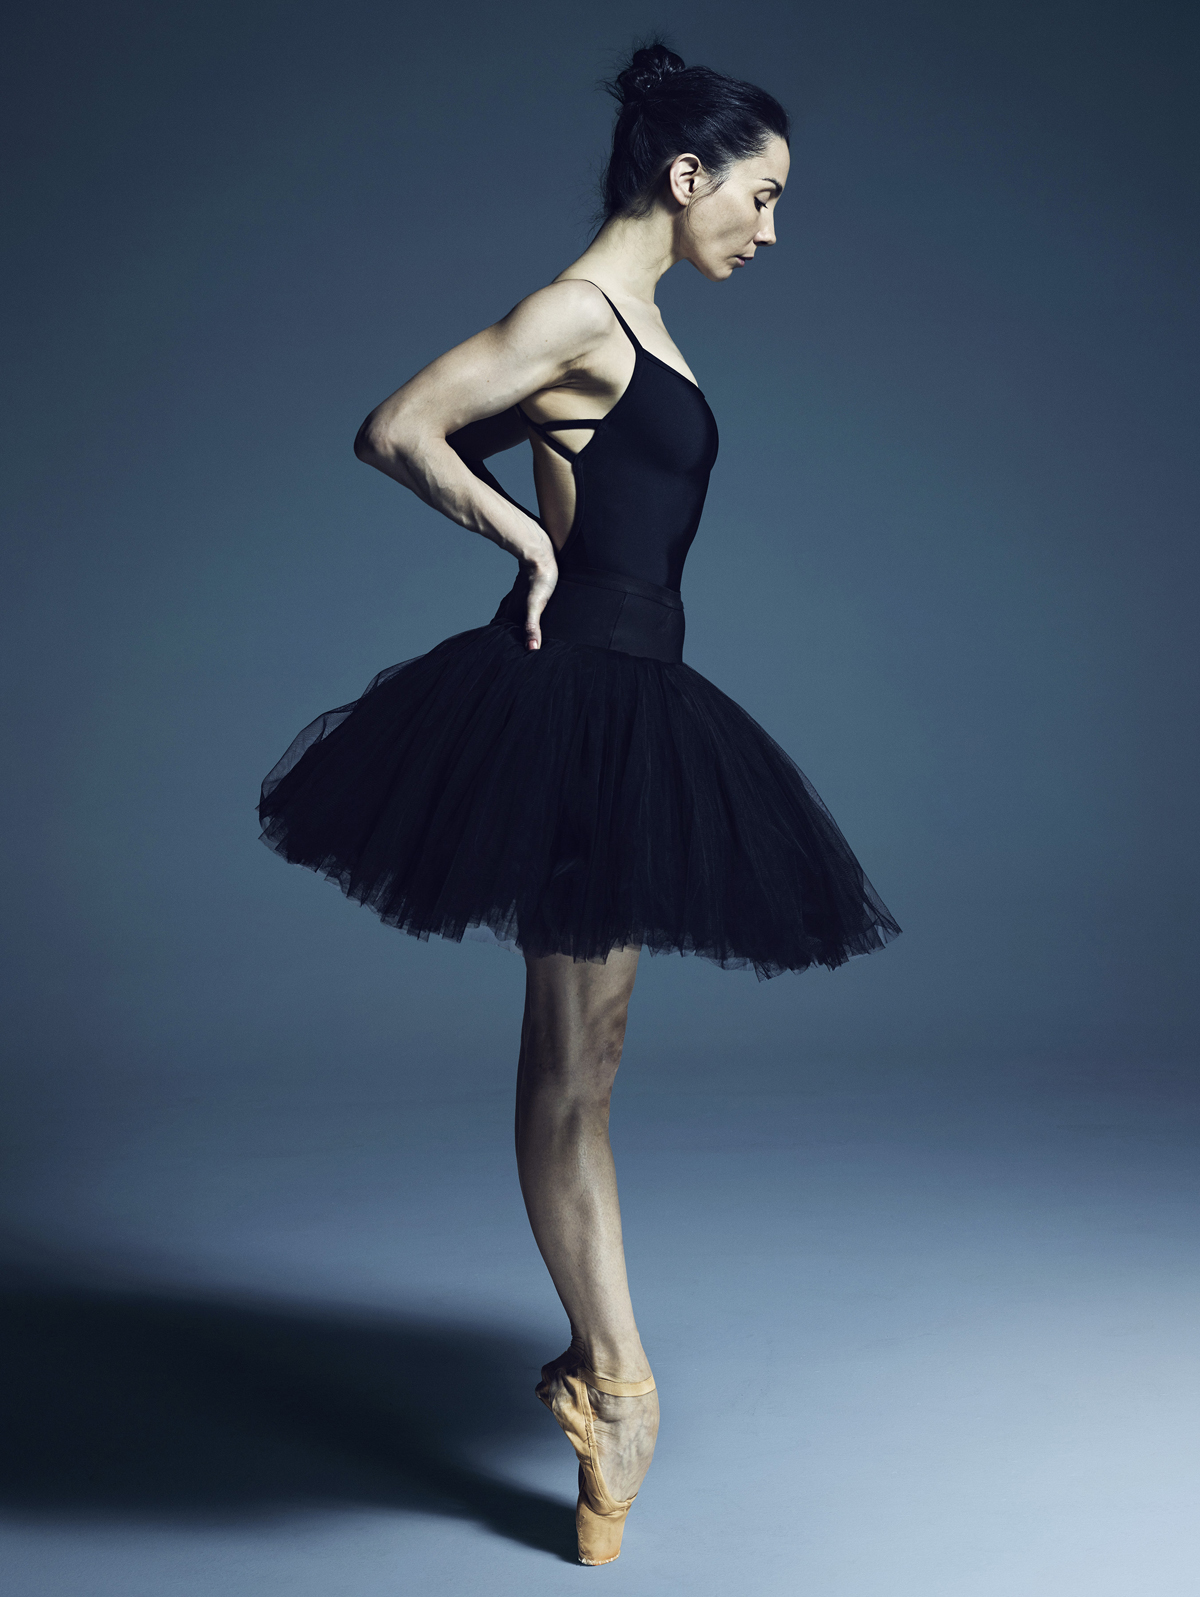 Tamara Rojo, artistic director and principal of the English National Ballet